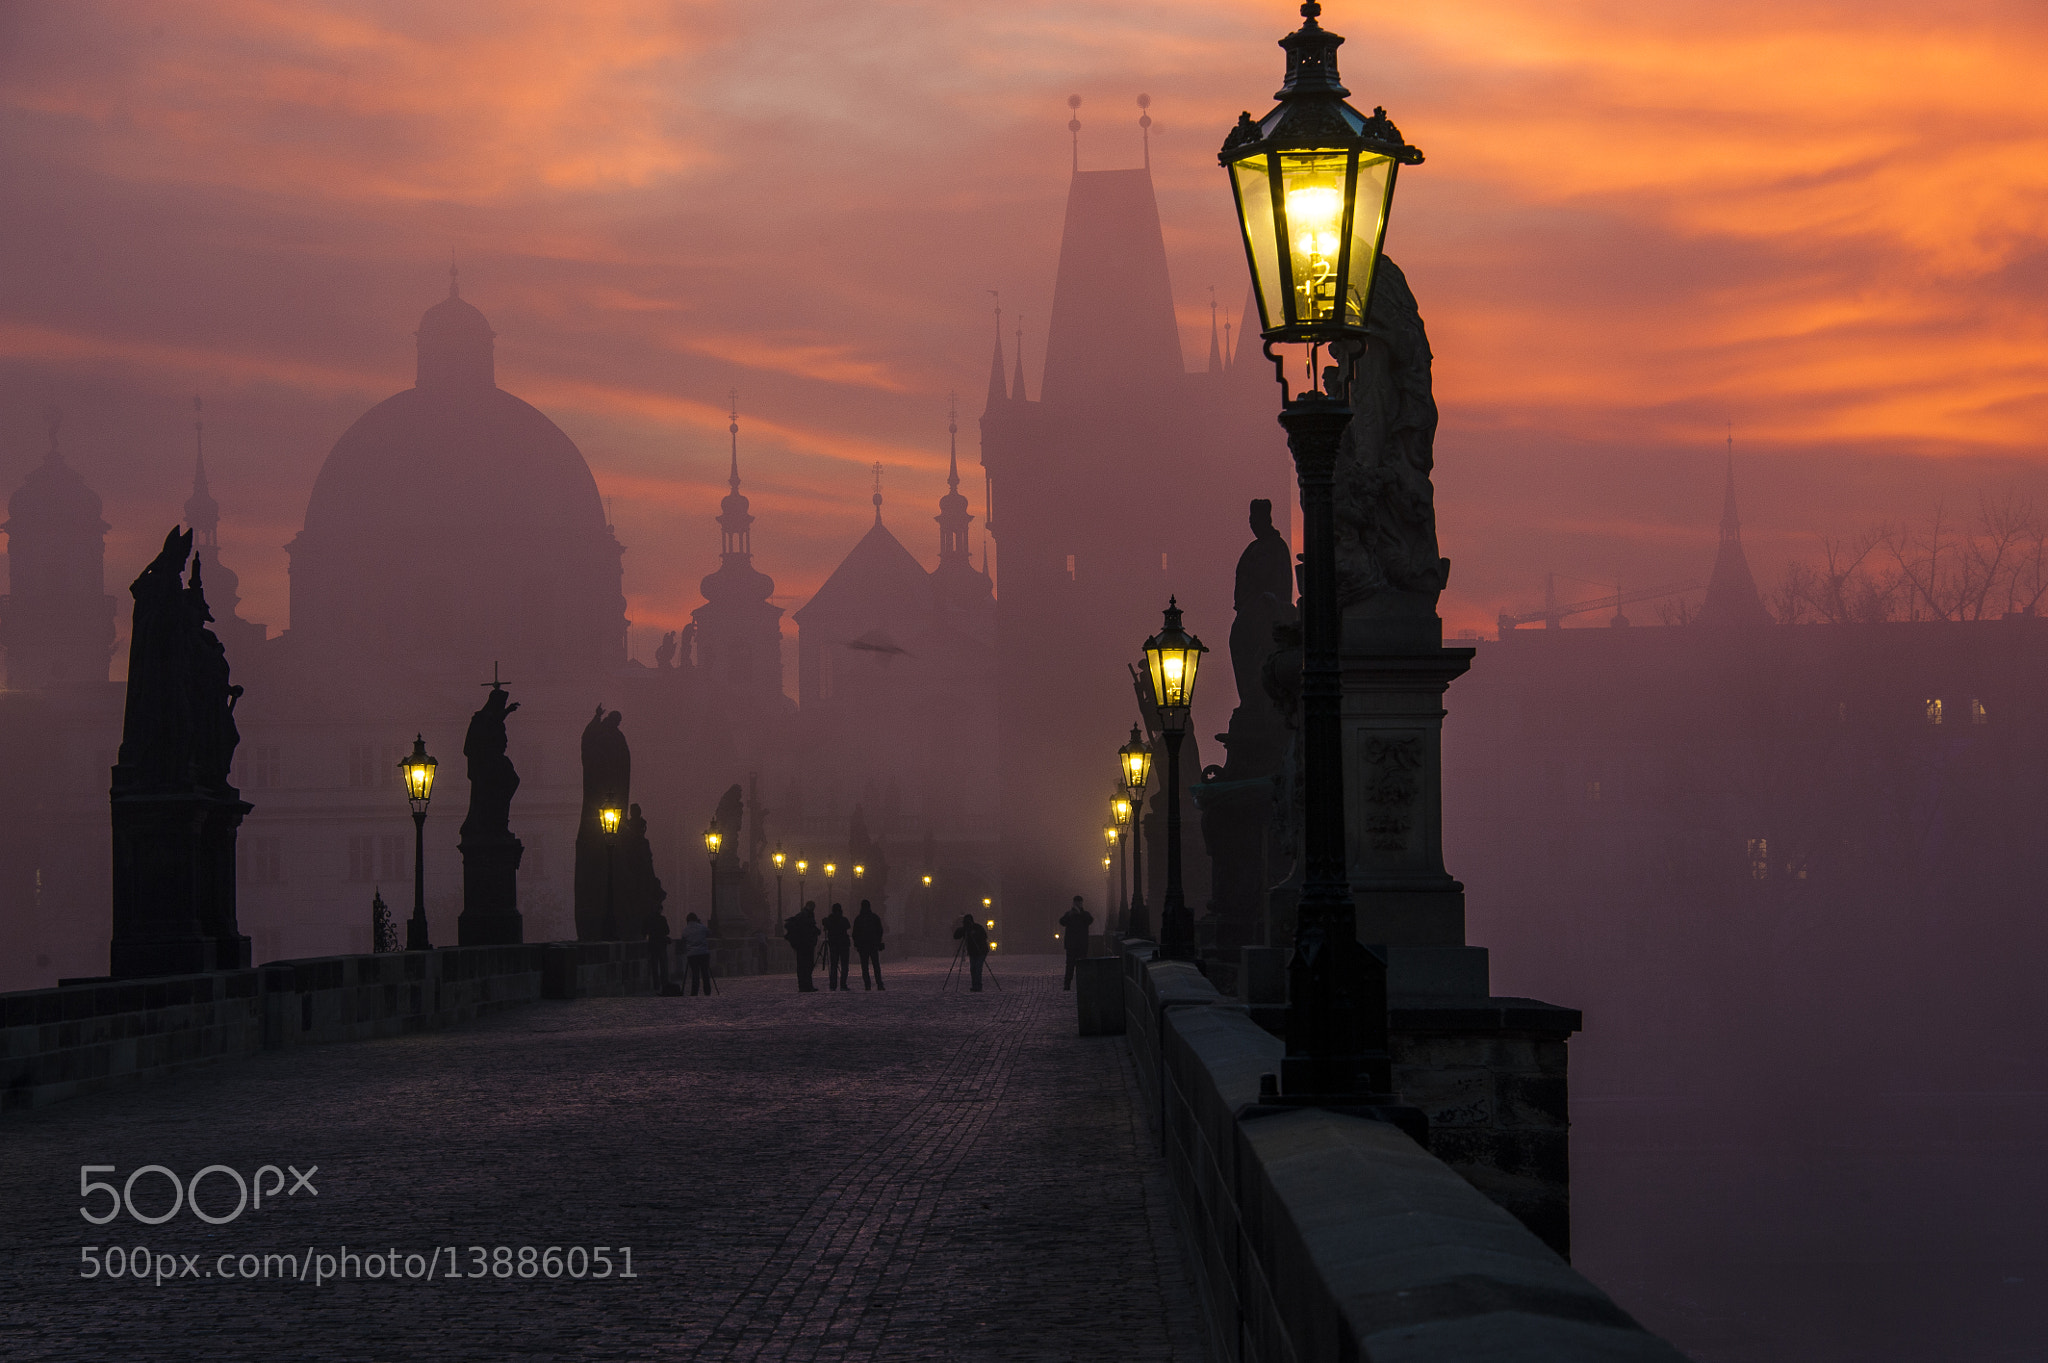 Photograph Daybreak by Markus Grunau on 500px